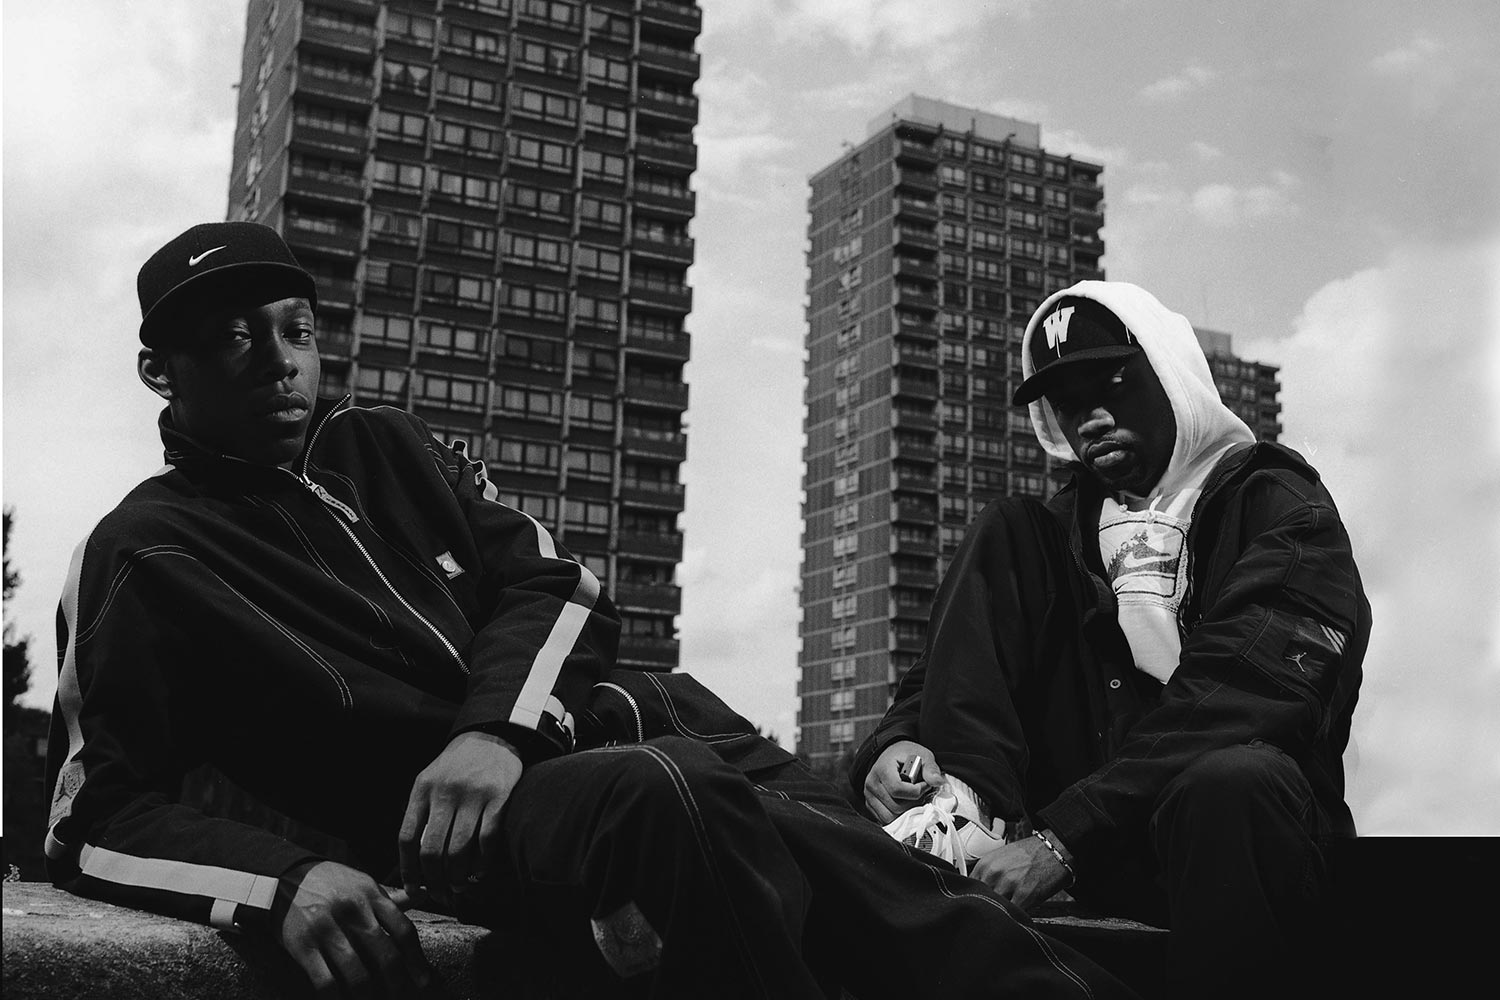 Wiley and Dizze, two grime artists, on a wall in front of three blocks of flats in East London, black and white photography